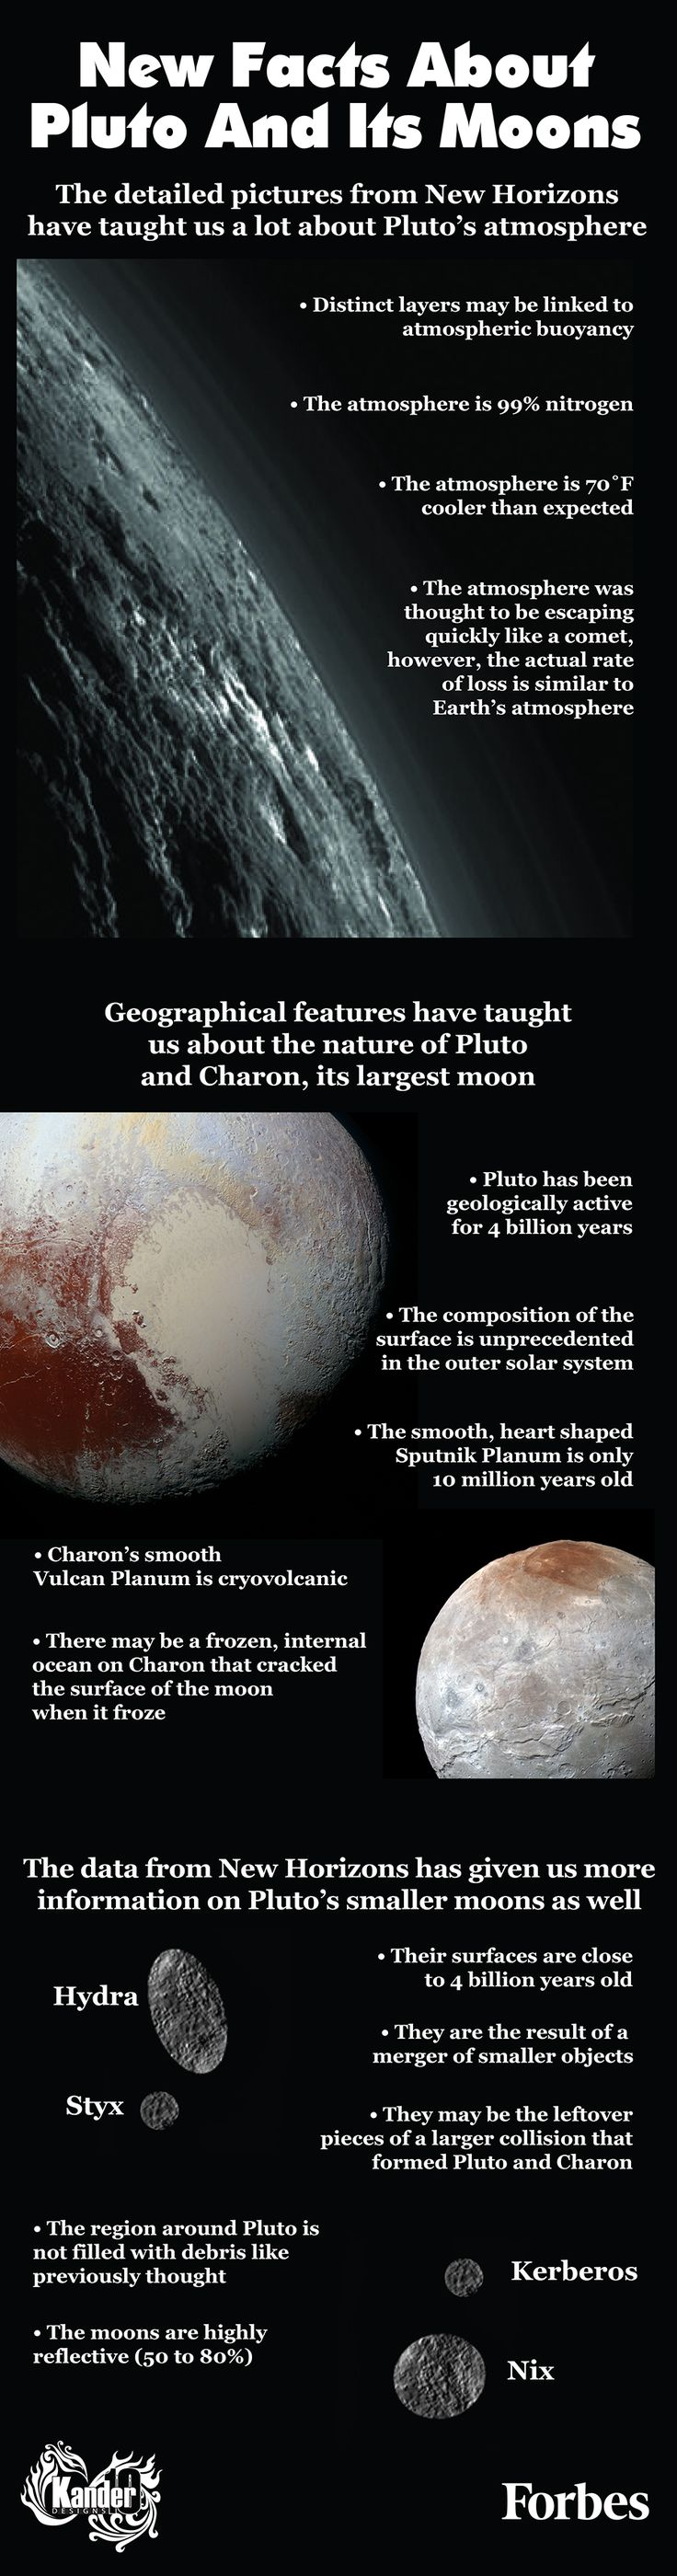 Scientists Discover New Facts About Pluto And Its Moons